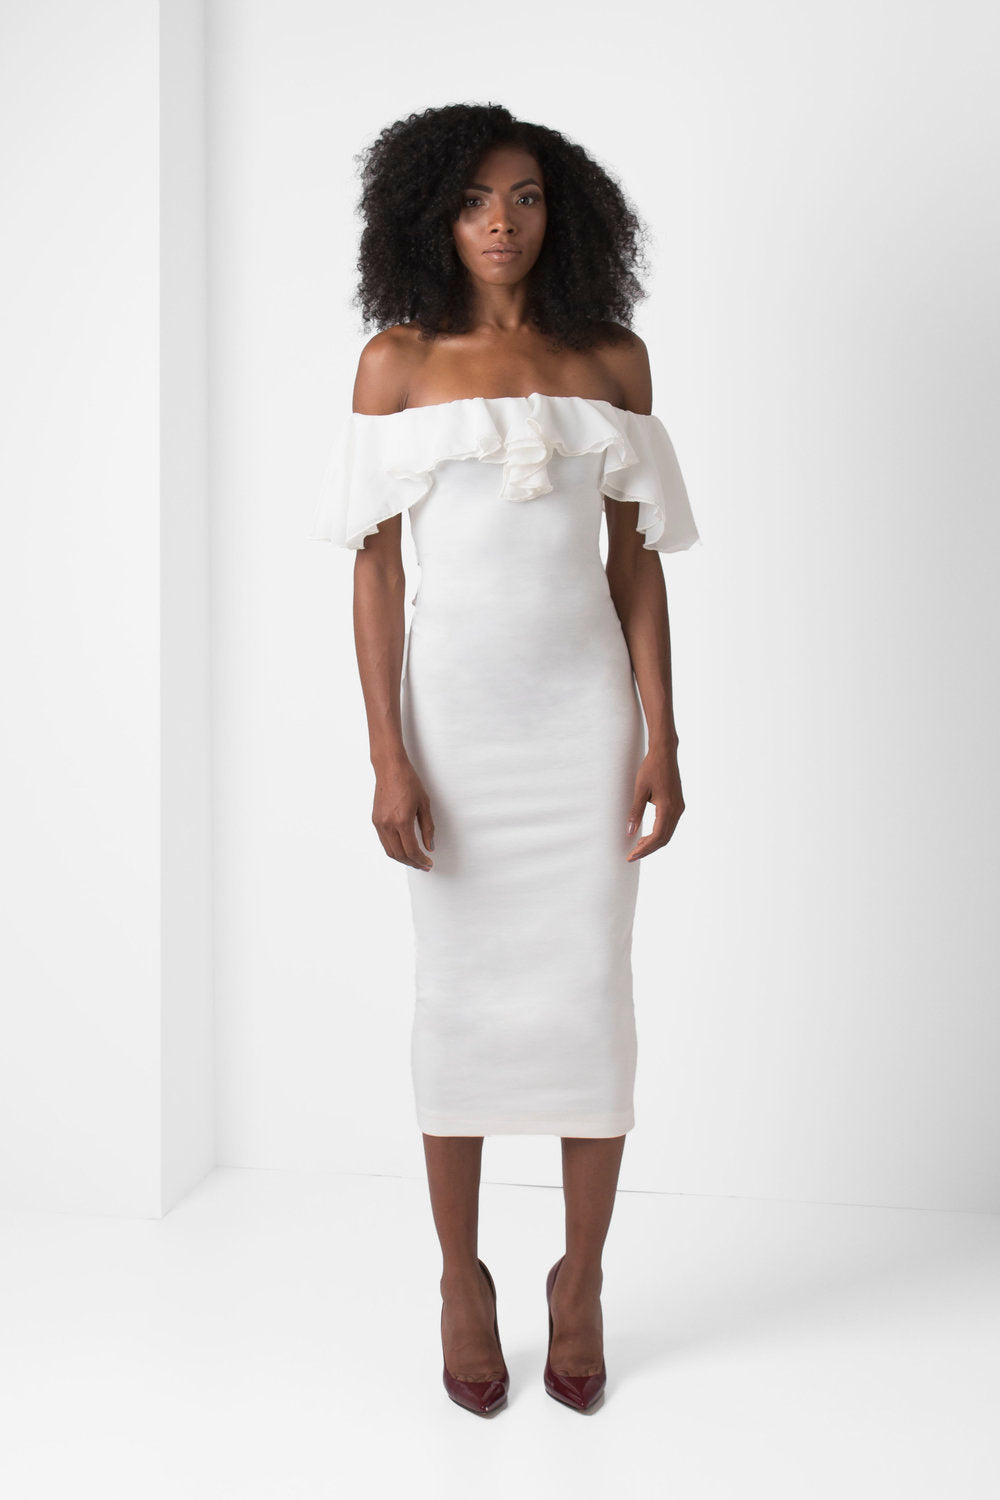 Off-White Off the Shoulders Pencil Dress - pacorogiene